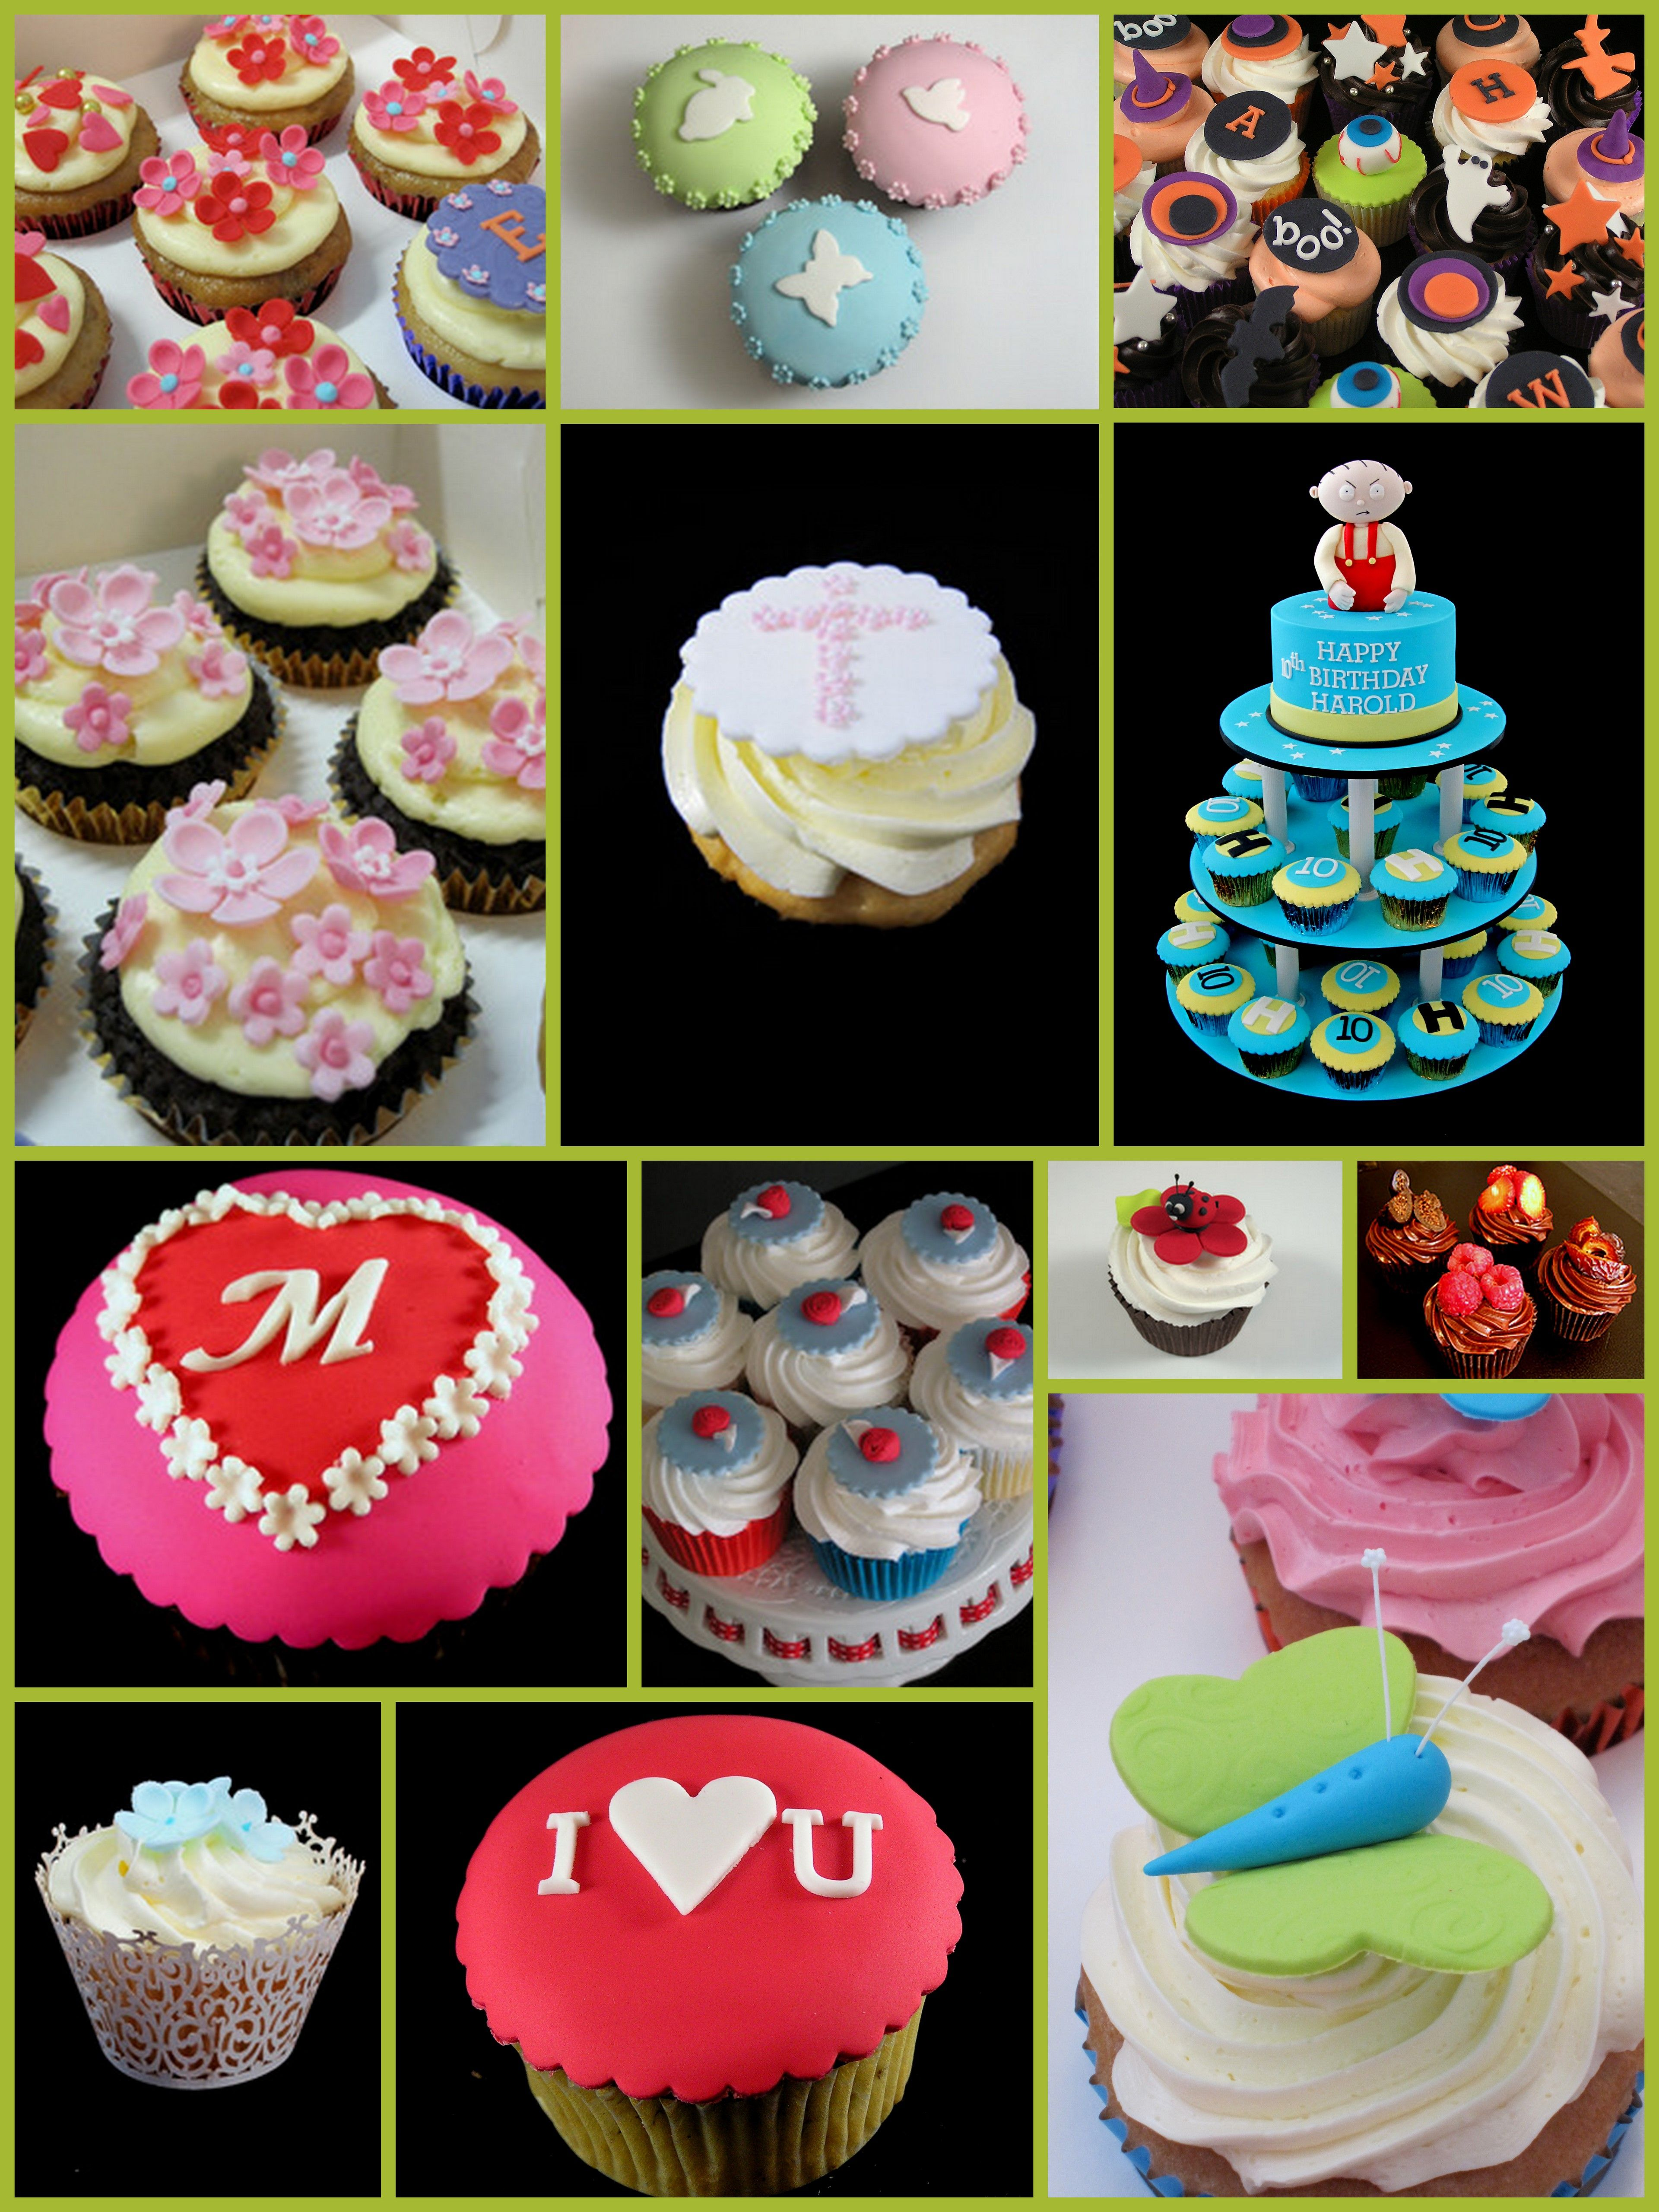 Cupcake Decorating Ideas Recipes And Simple Decorations